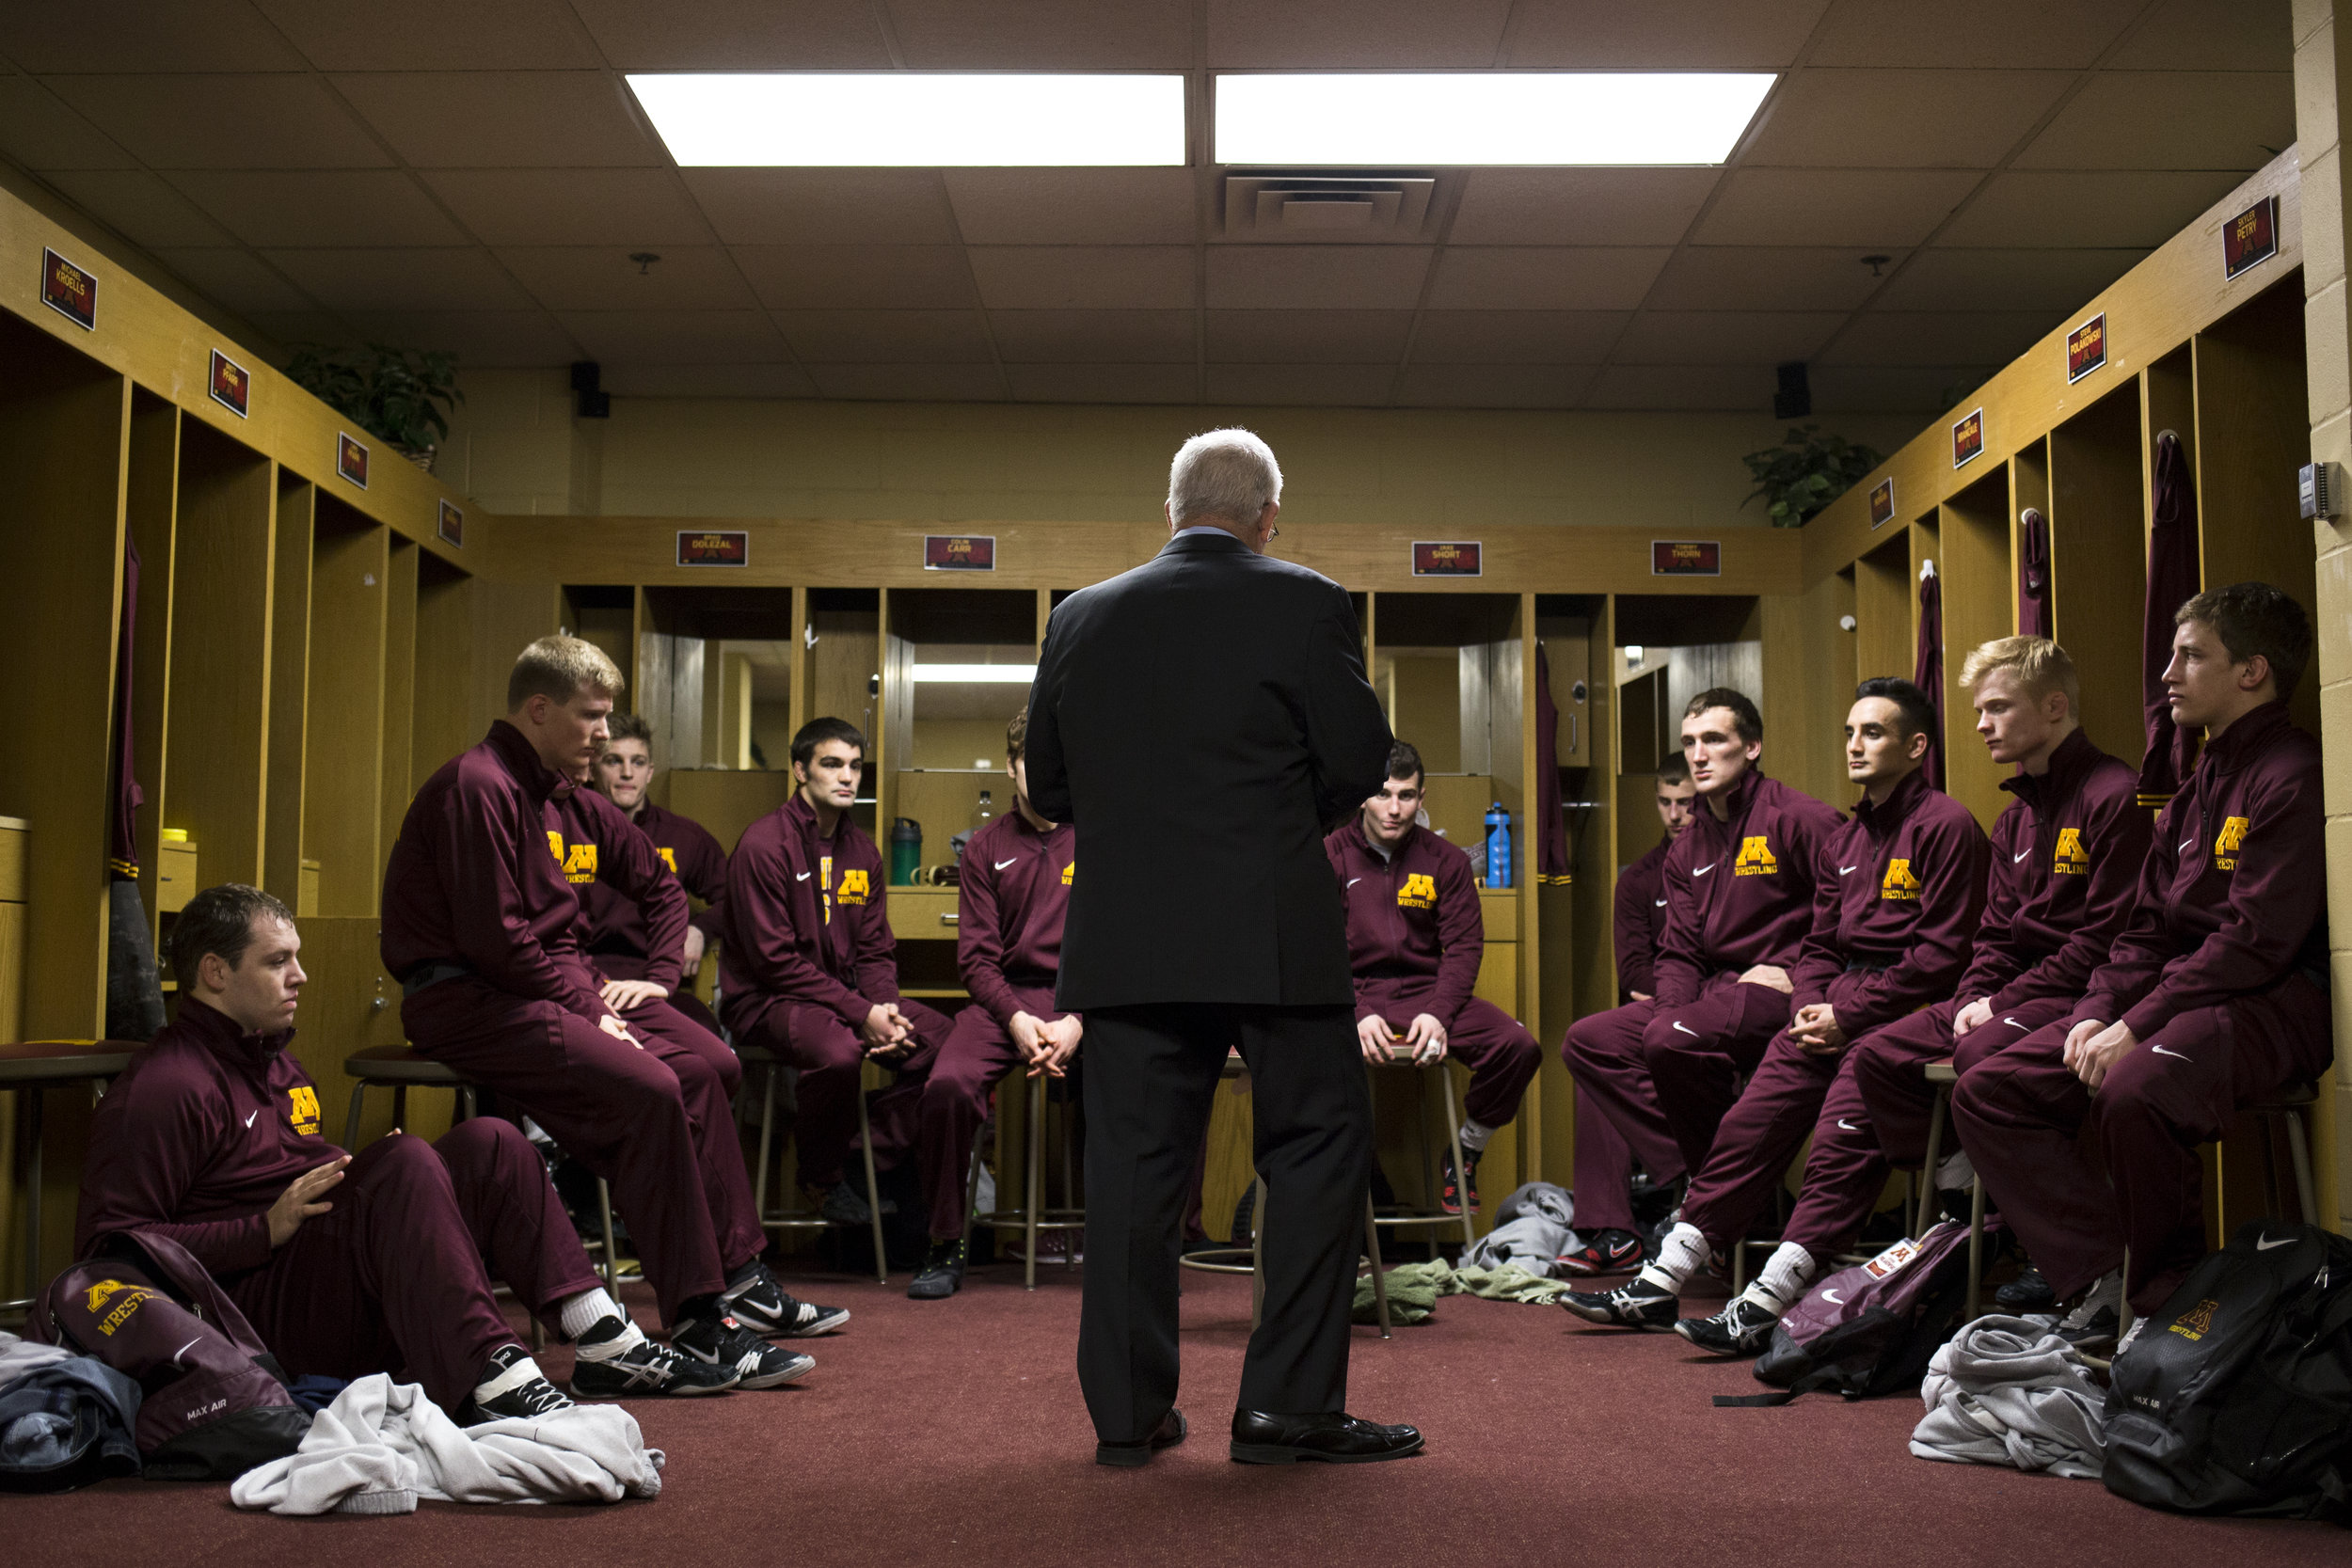 """Head coach J Robinson delivers a speech to the team before a home dual meet at the Sports Pavilion. Robinson, who has led the Gophers wrestling team for 30 seasons, described these moments before competition as a time when each athlete practices his own method of becoming focused. Robinson said the goal of his pre-competition speech is to """"have them believe in their training"""" so that """"when they step on the mat, when they step into the arena, they are mentally tuned and ready to go."""""""